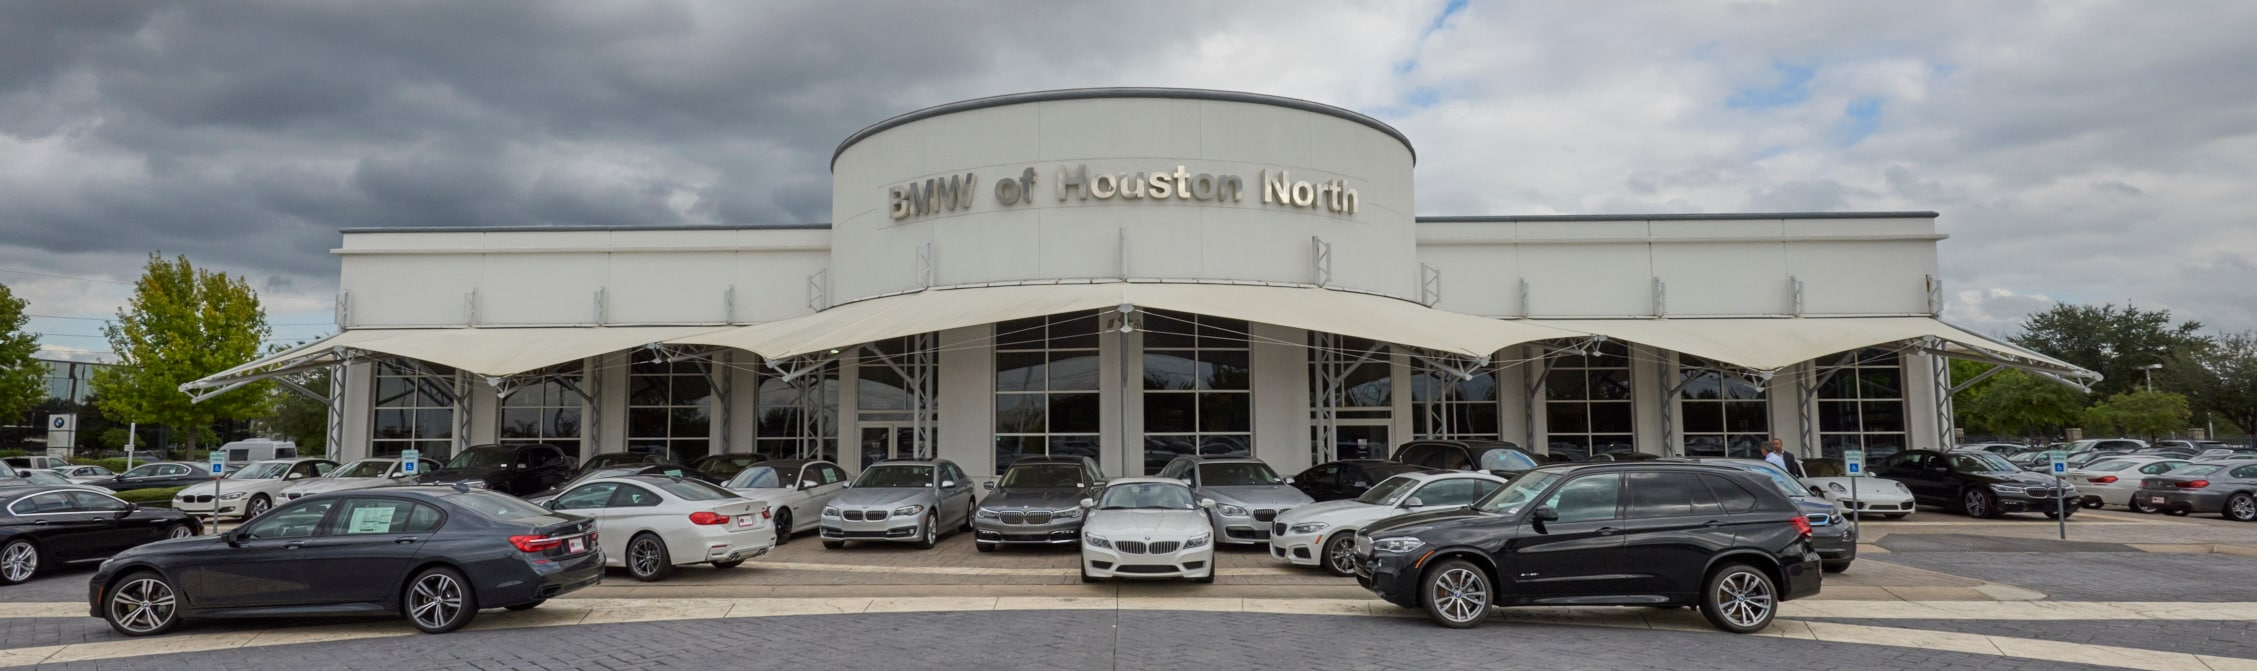 bmw dealership near me houston tx bmw of houston north autos post. Black Bedroom Furniture Sets. Home Design Ideas